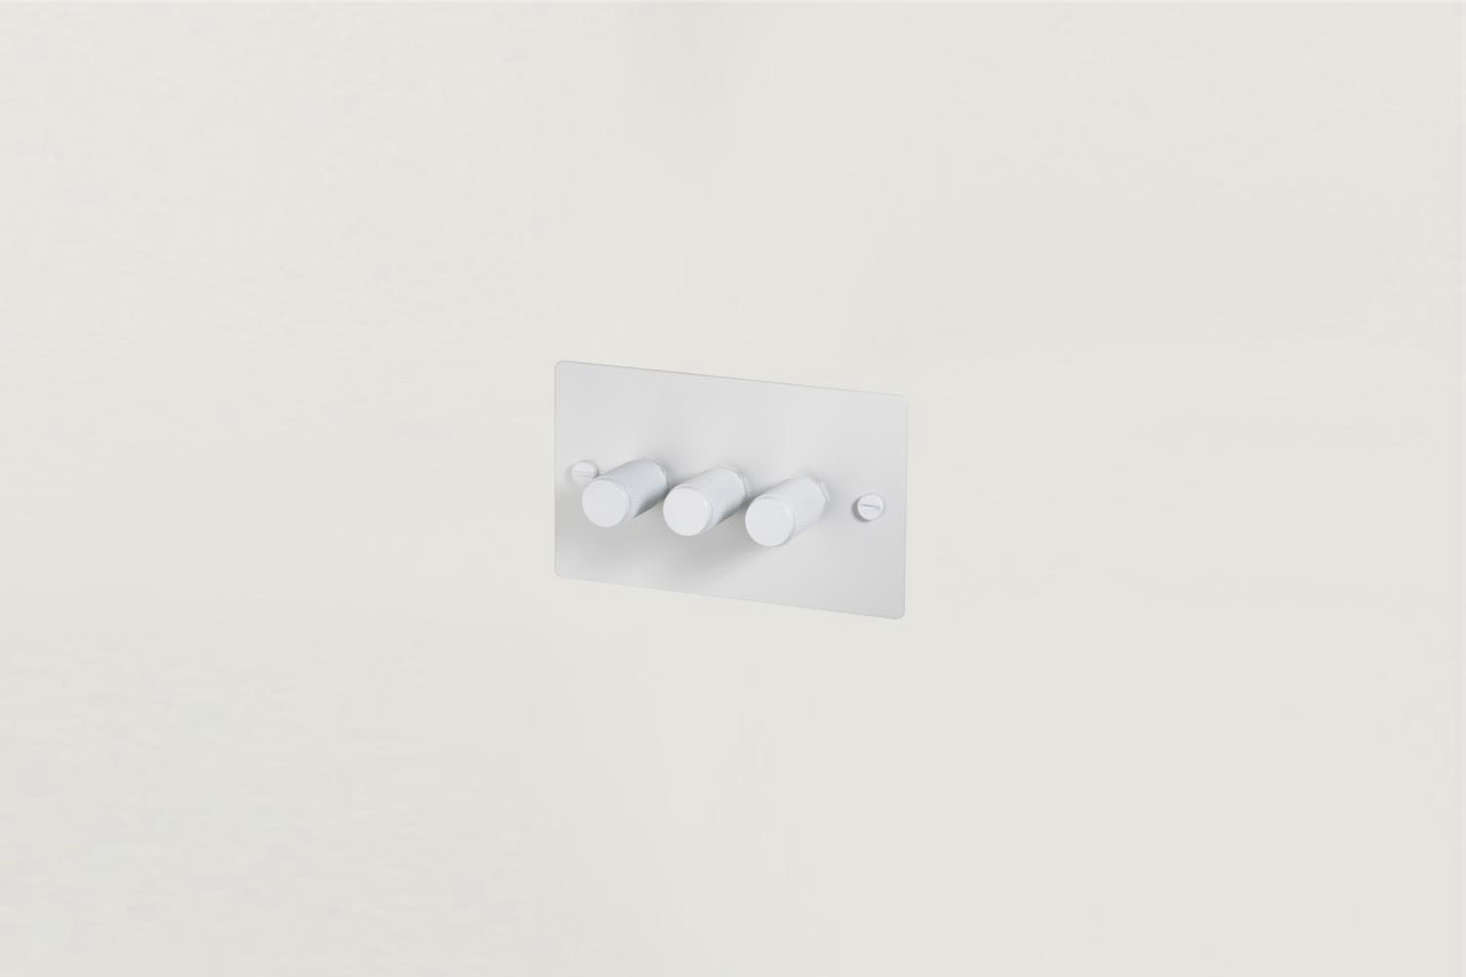 The Buster + Punch 3G Dimmer in White is £3 at Buster + Punch.